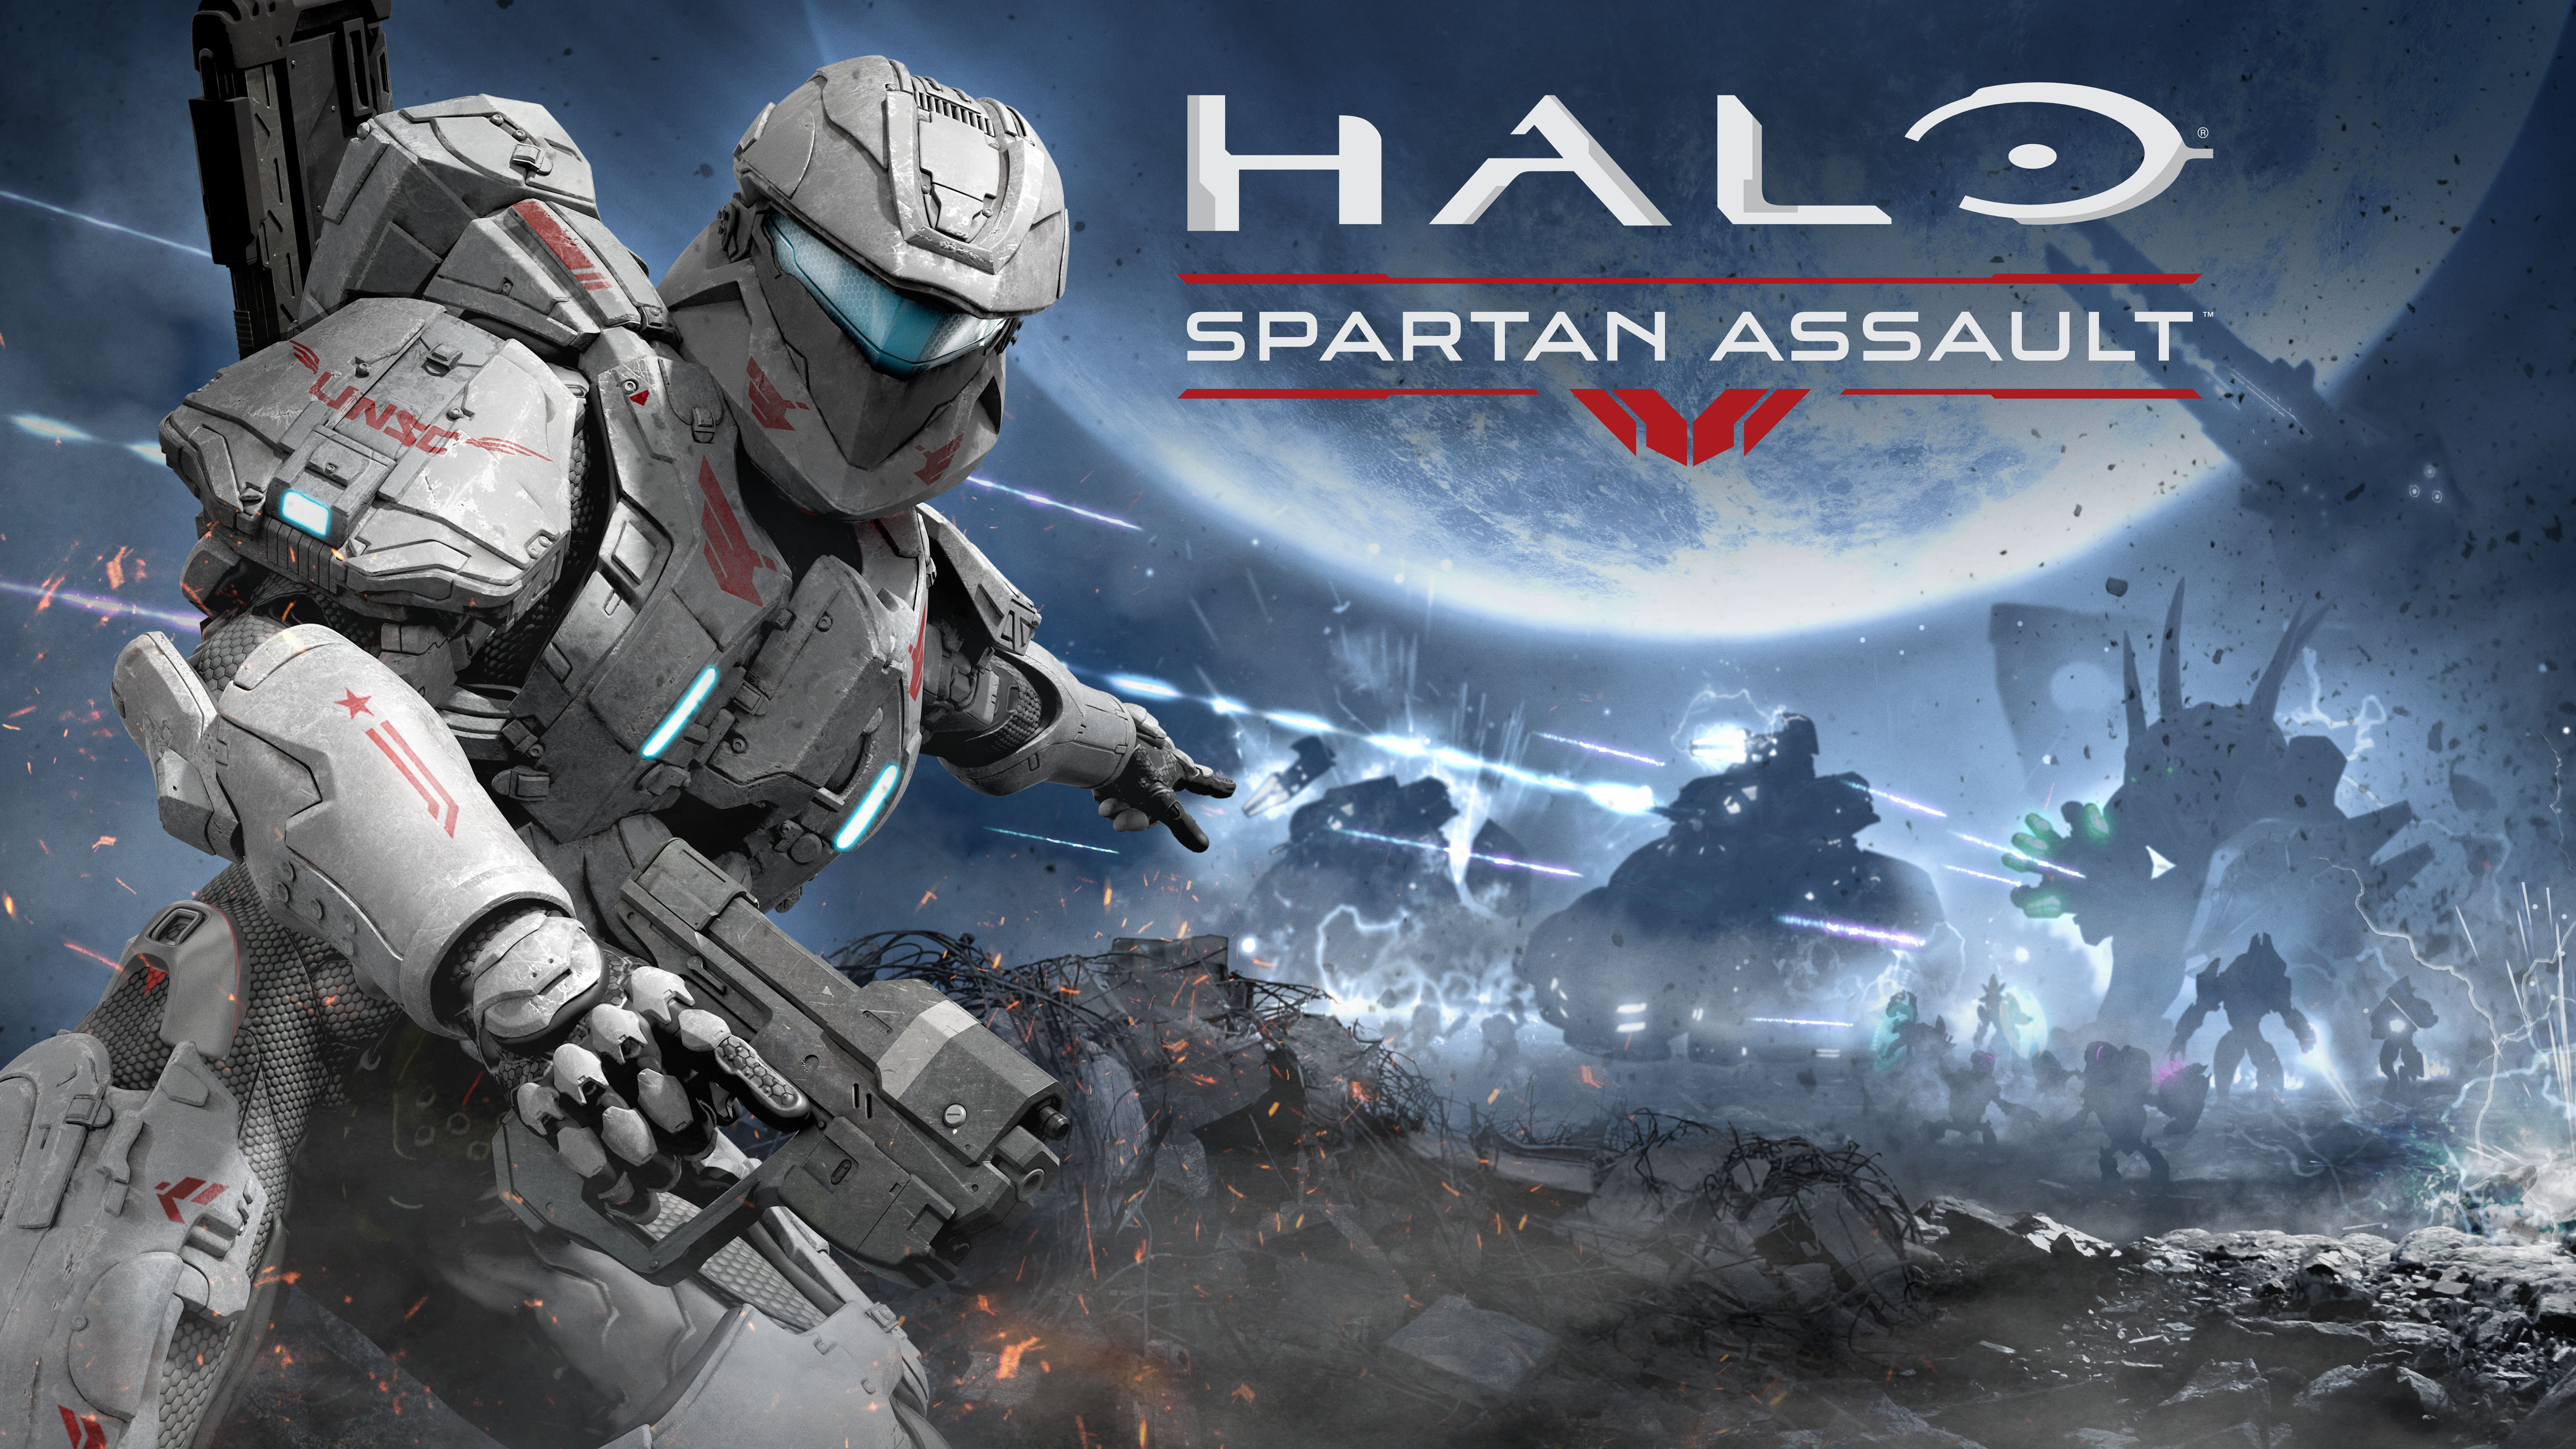 Verizon Gets Halo: Spartan Assault for Windows Phone First, Releases this July